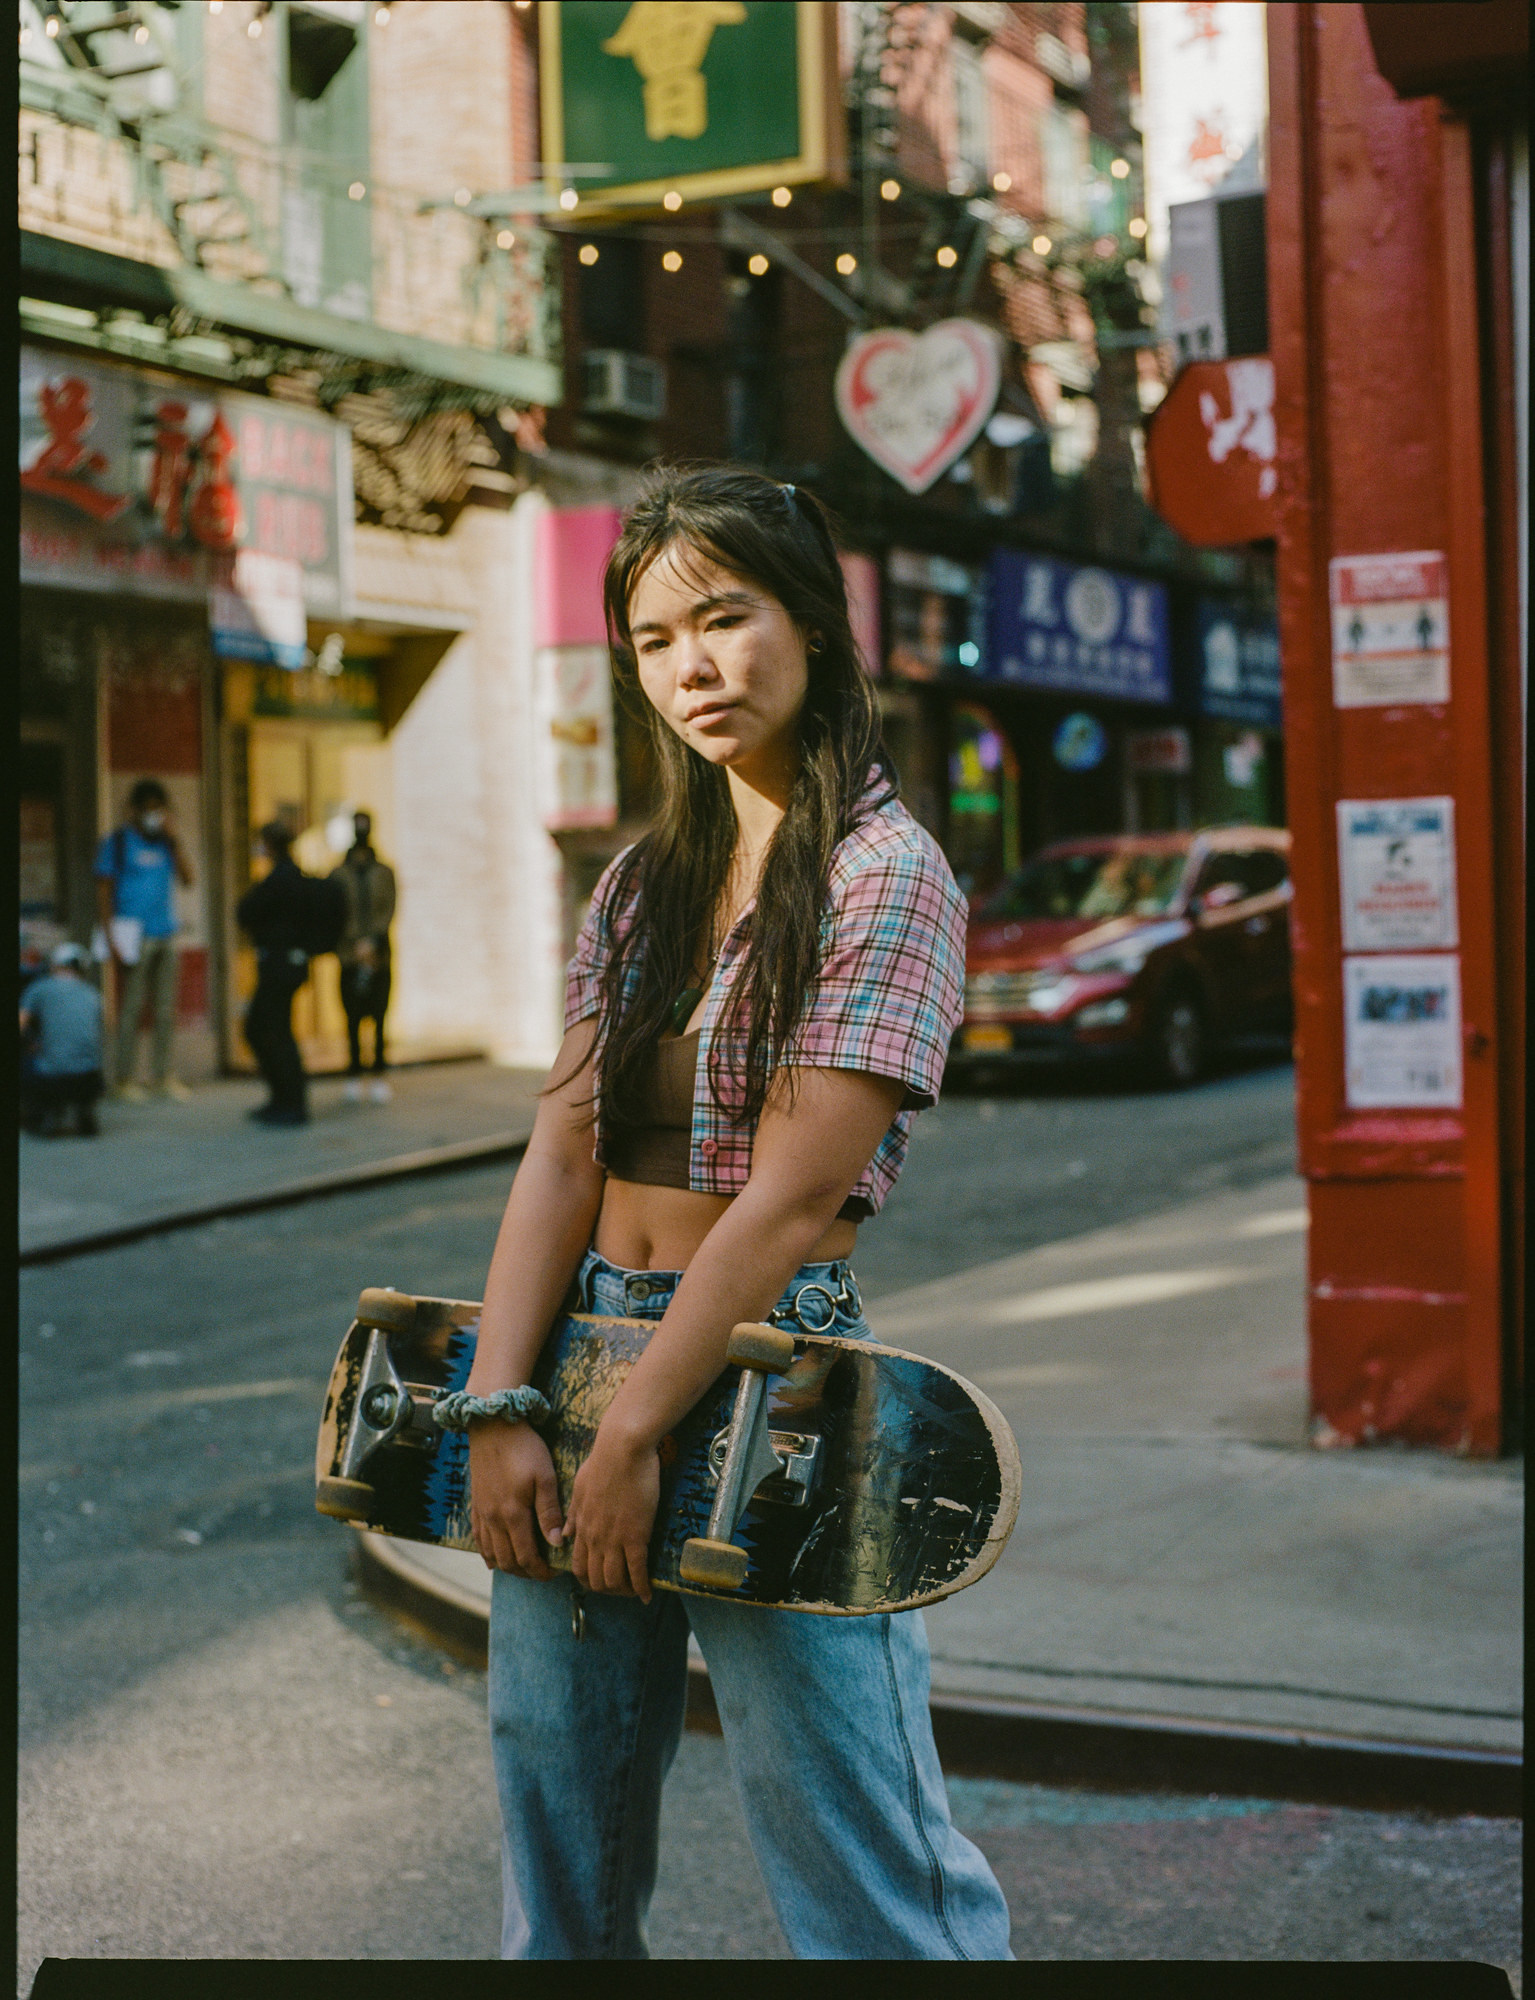 A woman in a crop top and jeans holds a skateboard